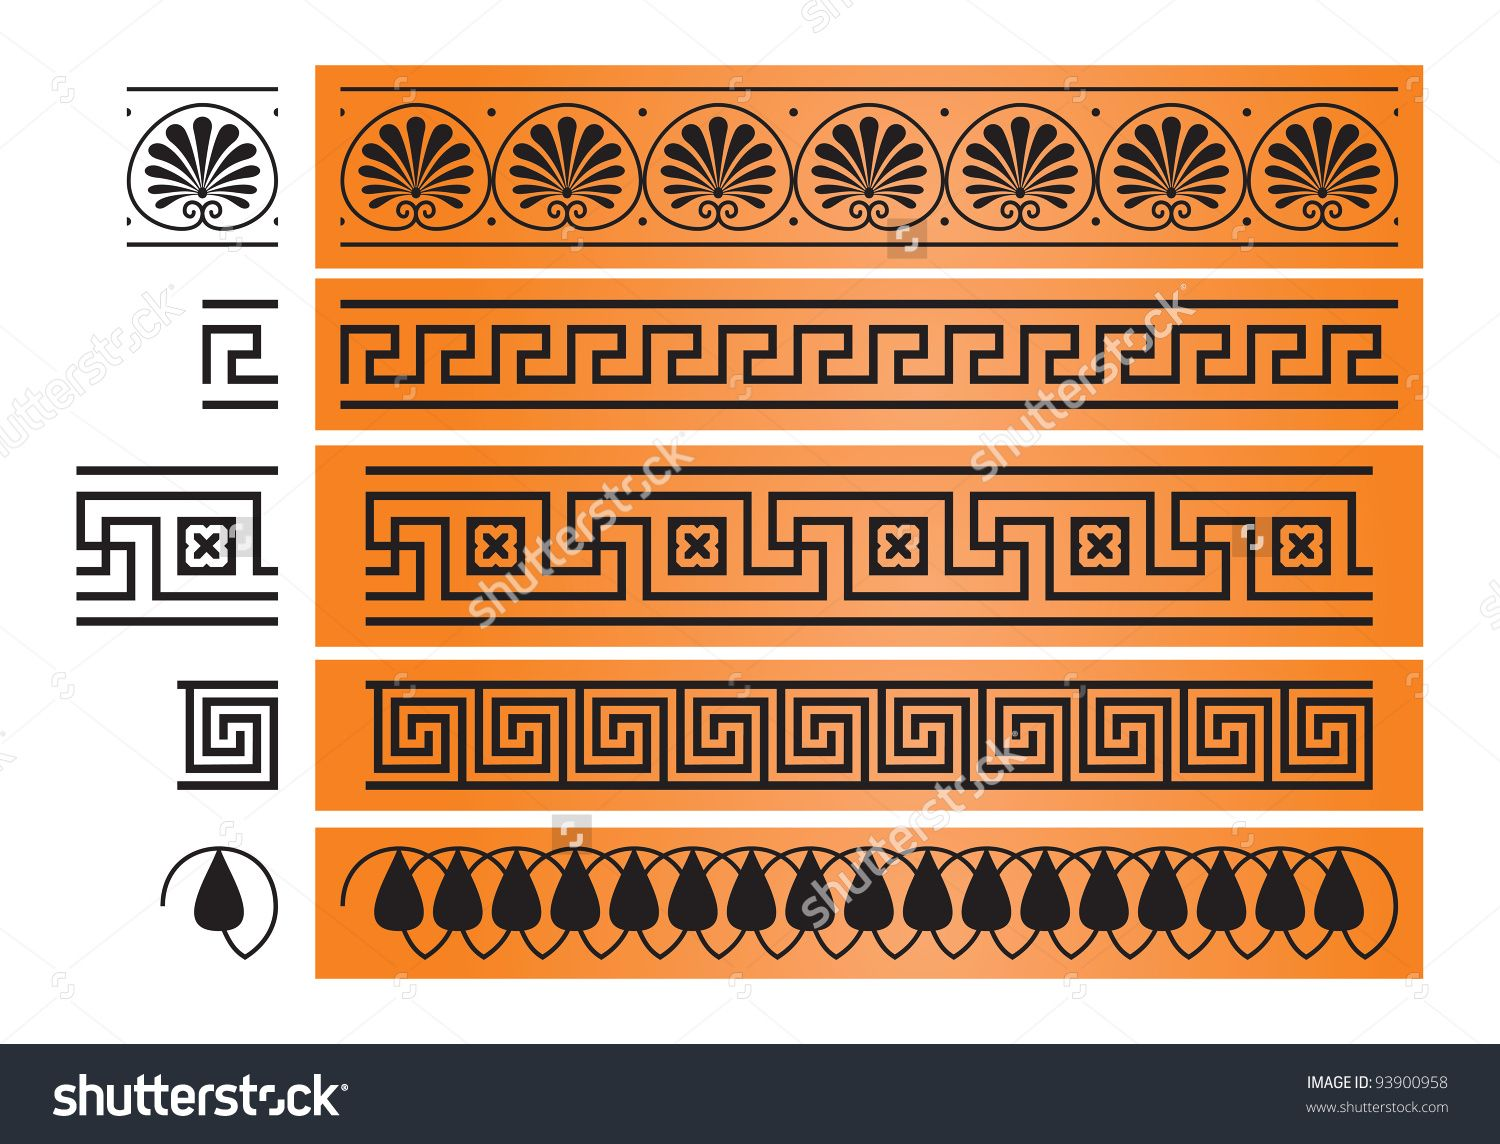 Pin by maria laskaris on canvas paintings pinterest greek ancient greece ornament octant meander decor from the ancient greek ceramic pottery vase painting architecture and design element vector image reviewsmspy